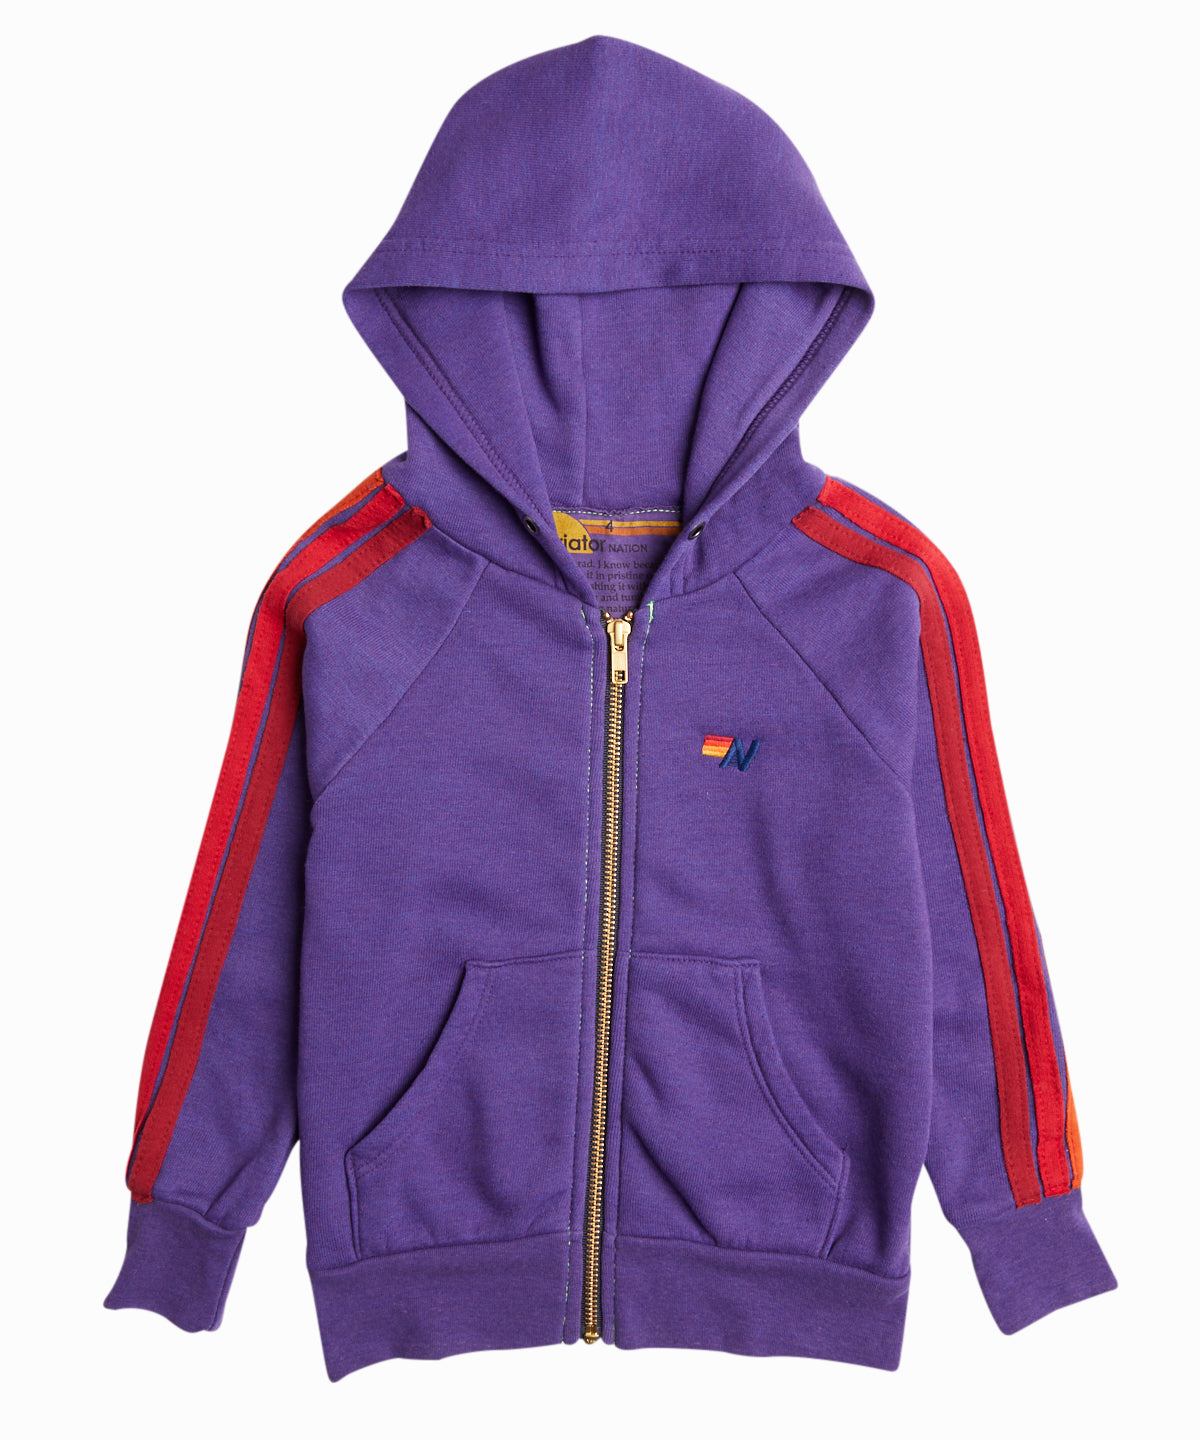 5 Stripe Zip Up Hooded Sweatshirt